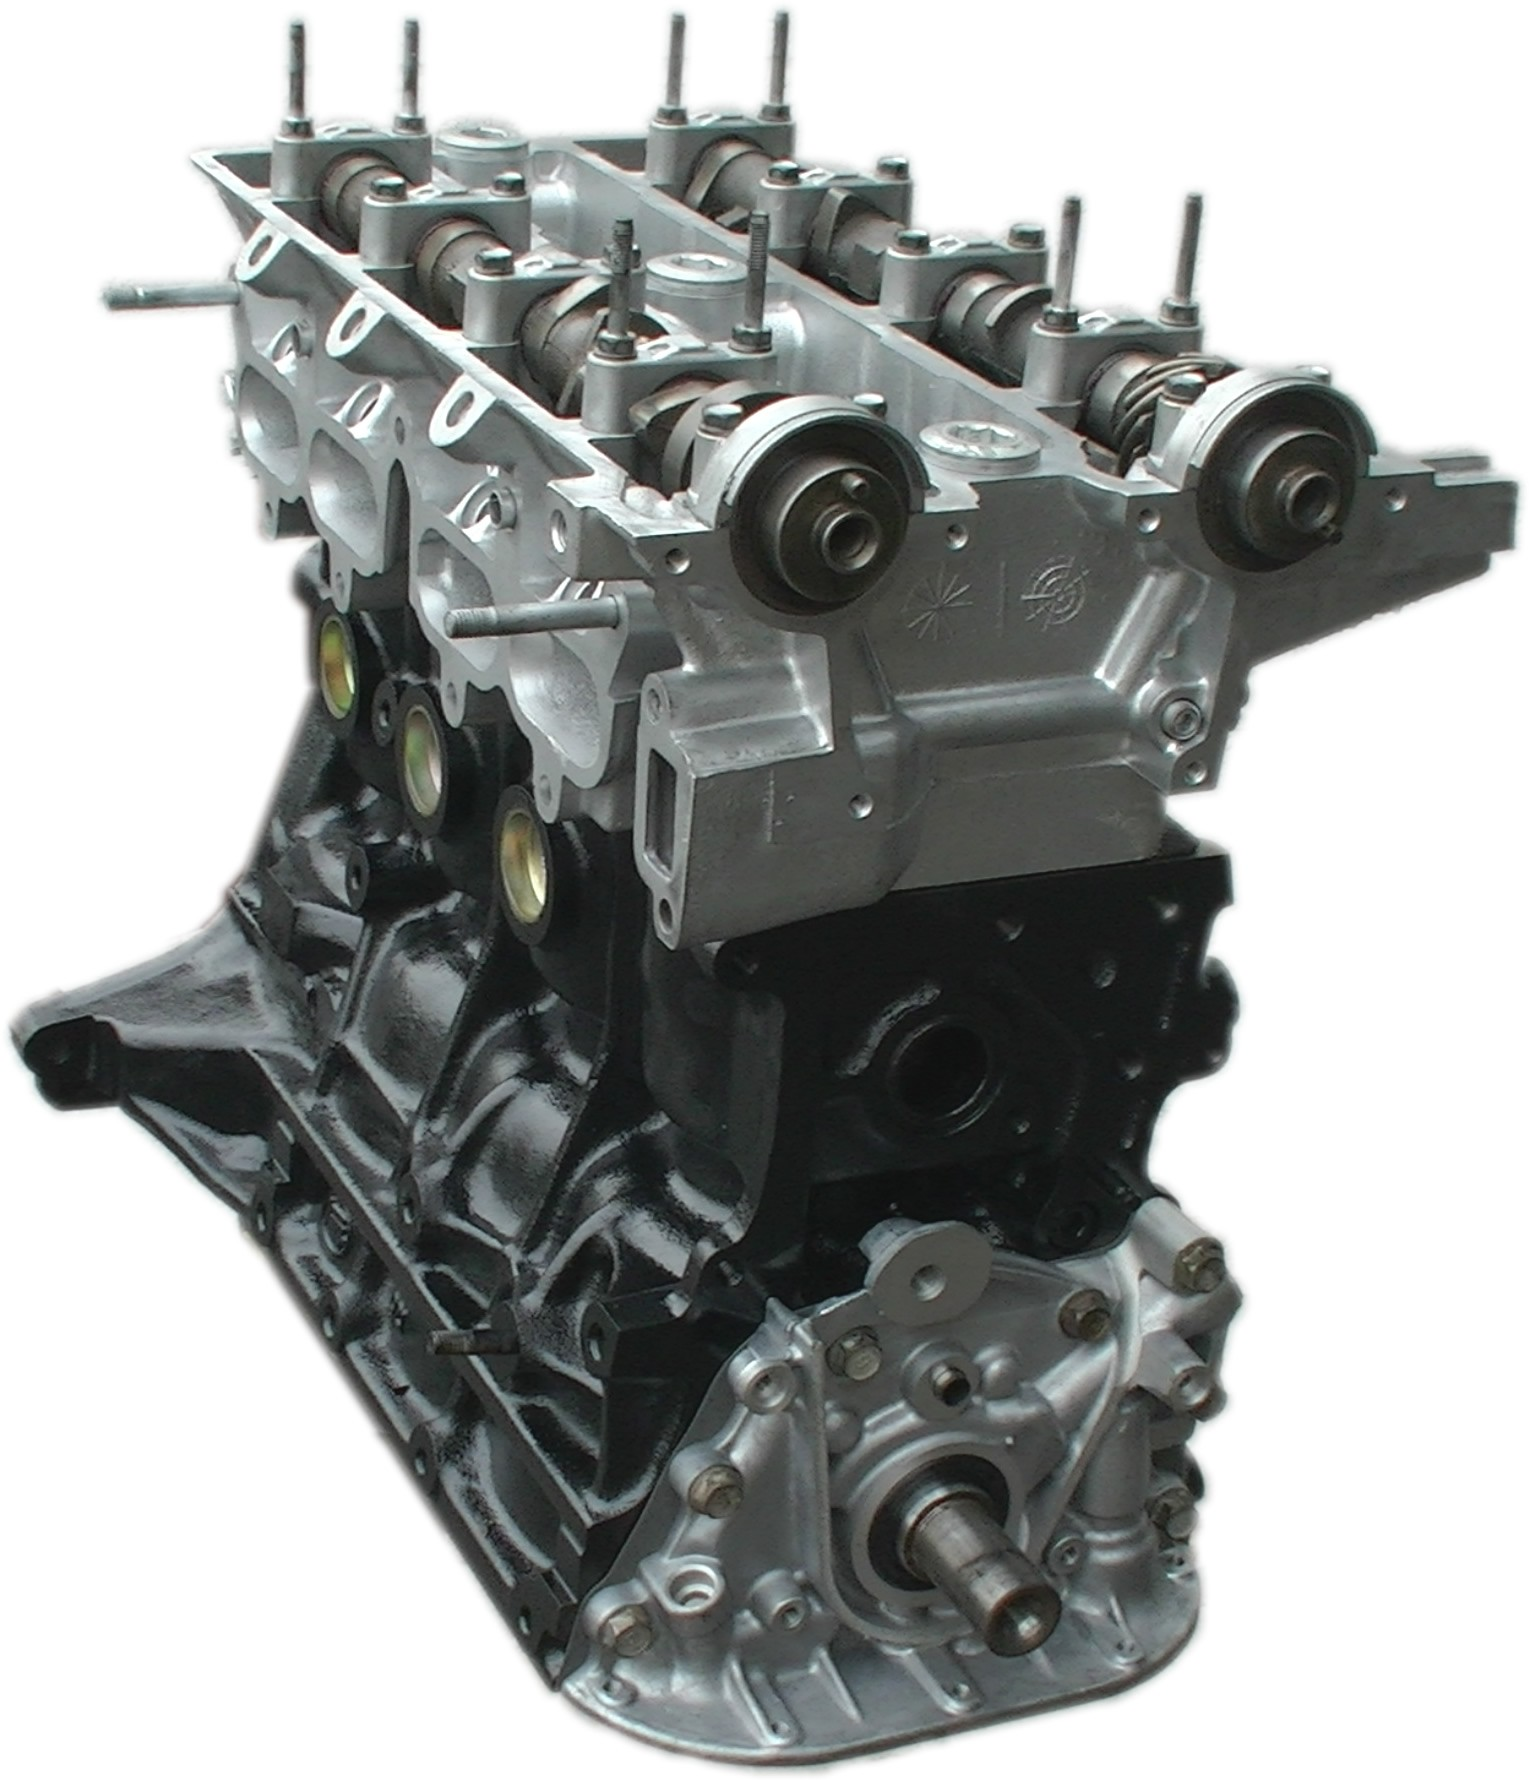 Rebuilt 85 89 Toyota Mr2 Non Supercharged 4age 1 6l Engine